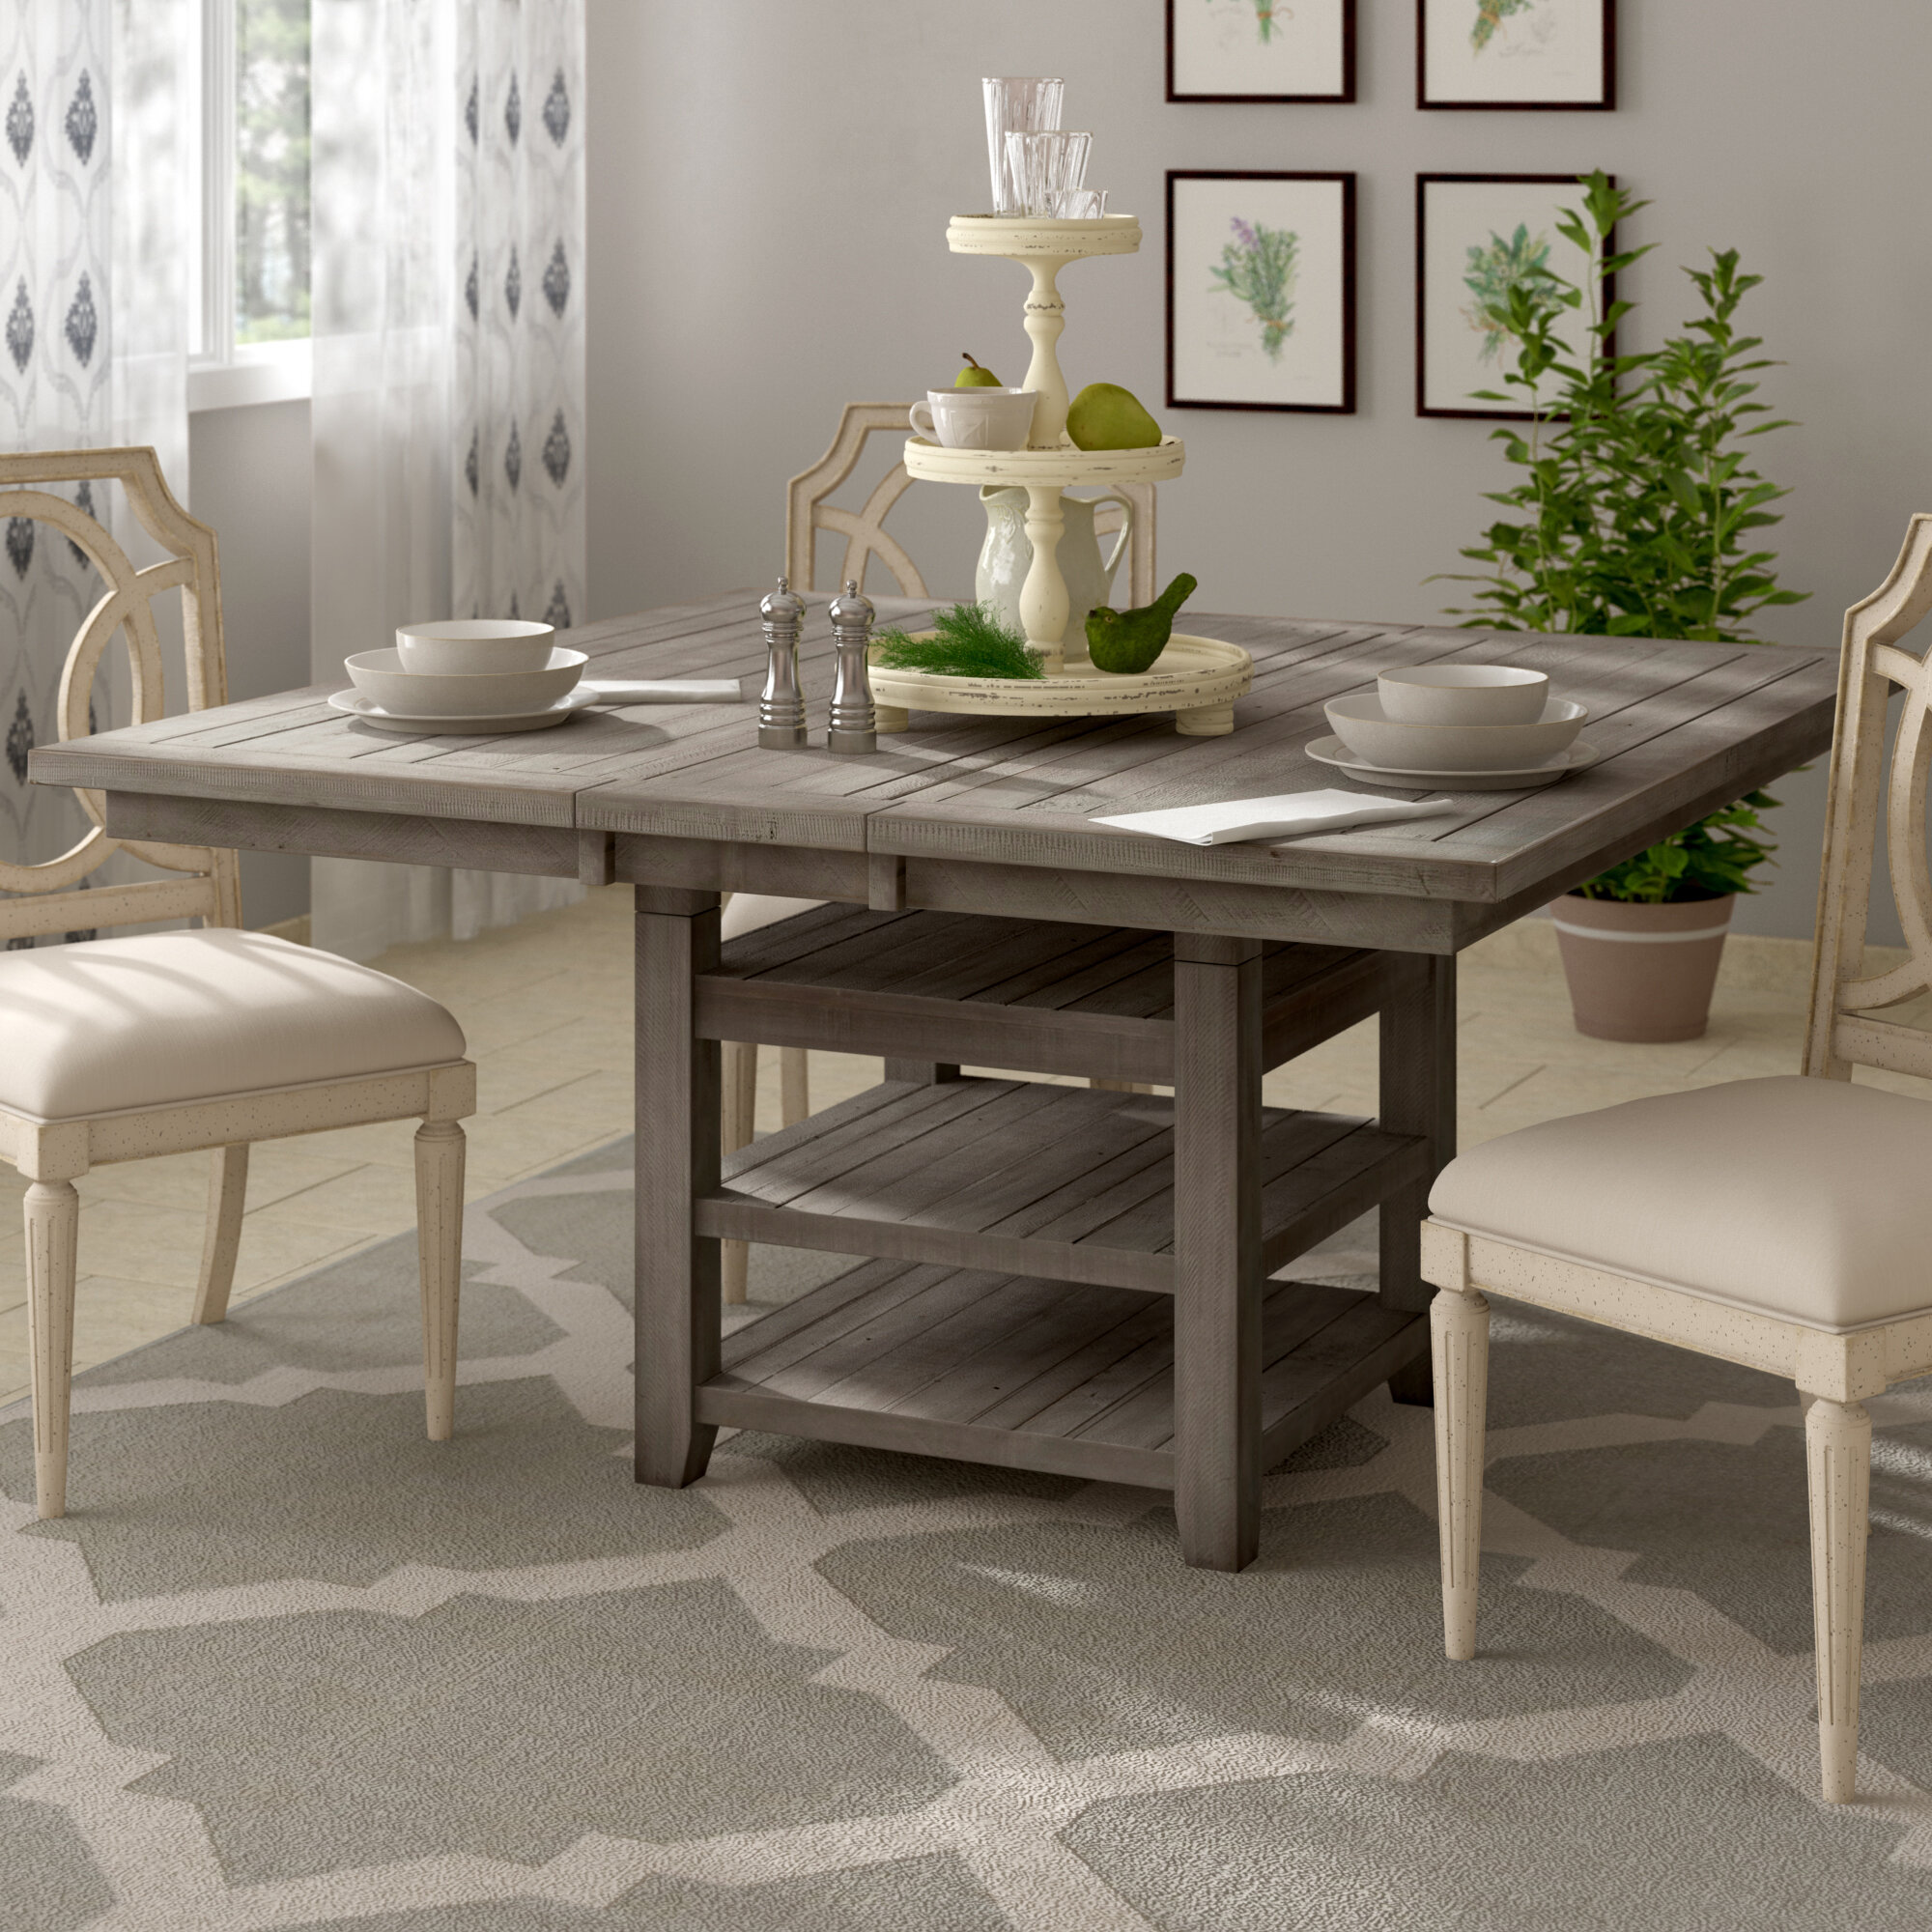 Canora Grey Grygla Extendable Pine Solid Wood Dining Table Reviews Wayfair